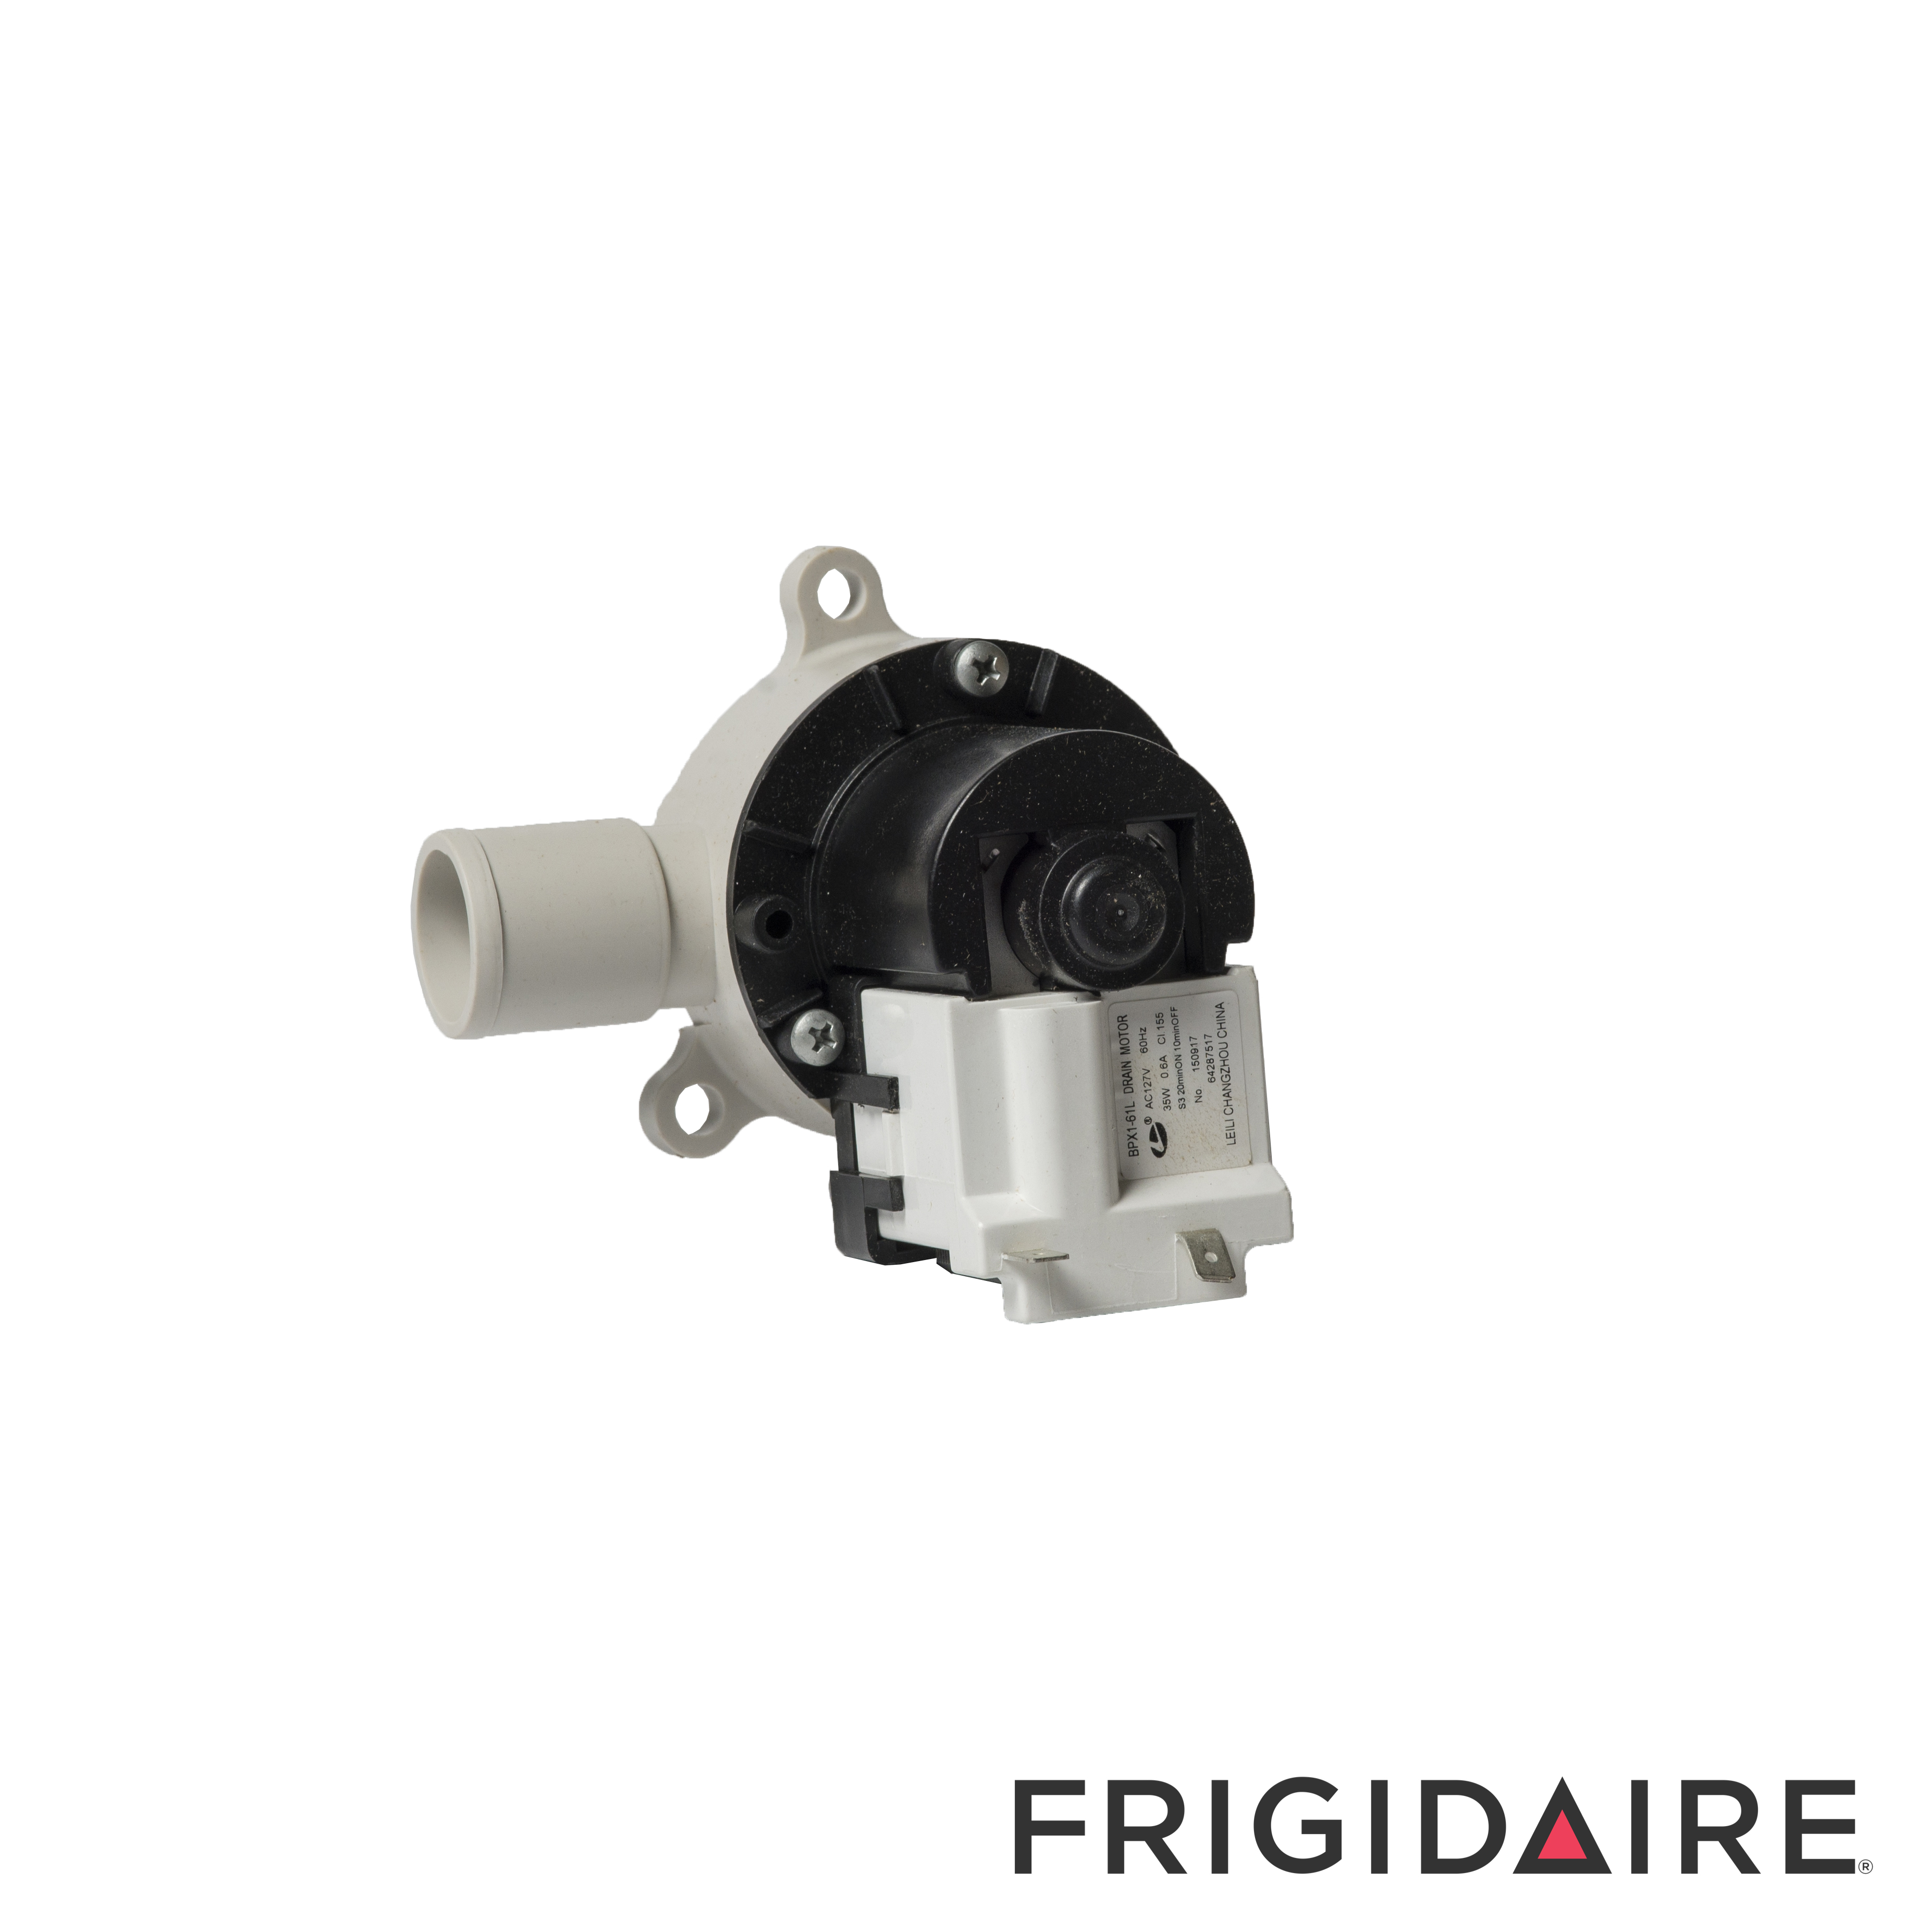 GP WASHER PUMP MOTOR 35W 110-1